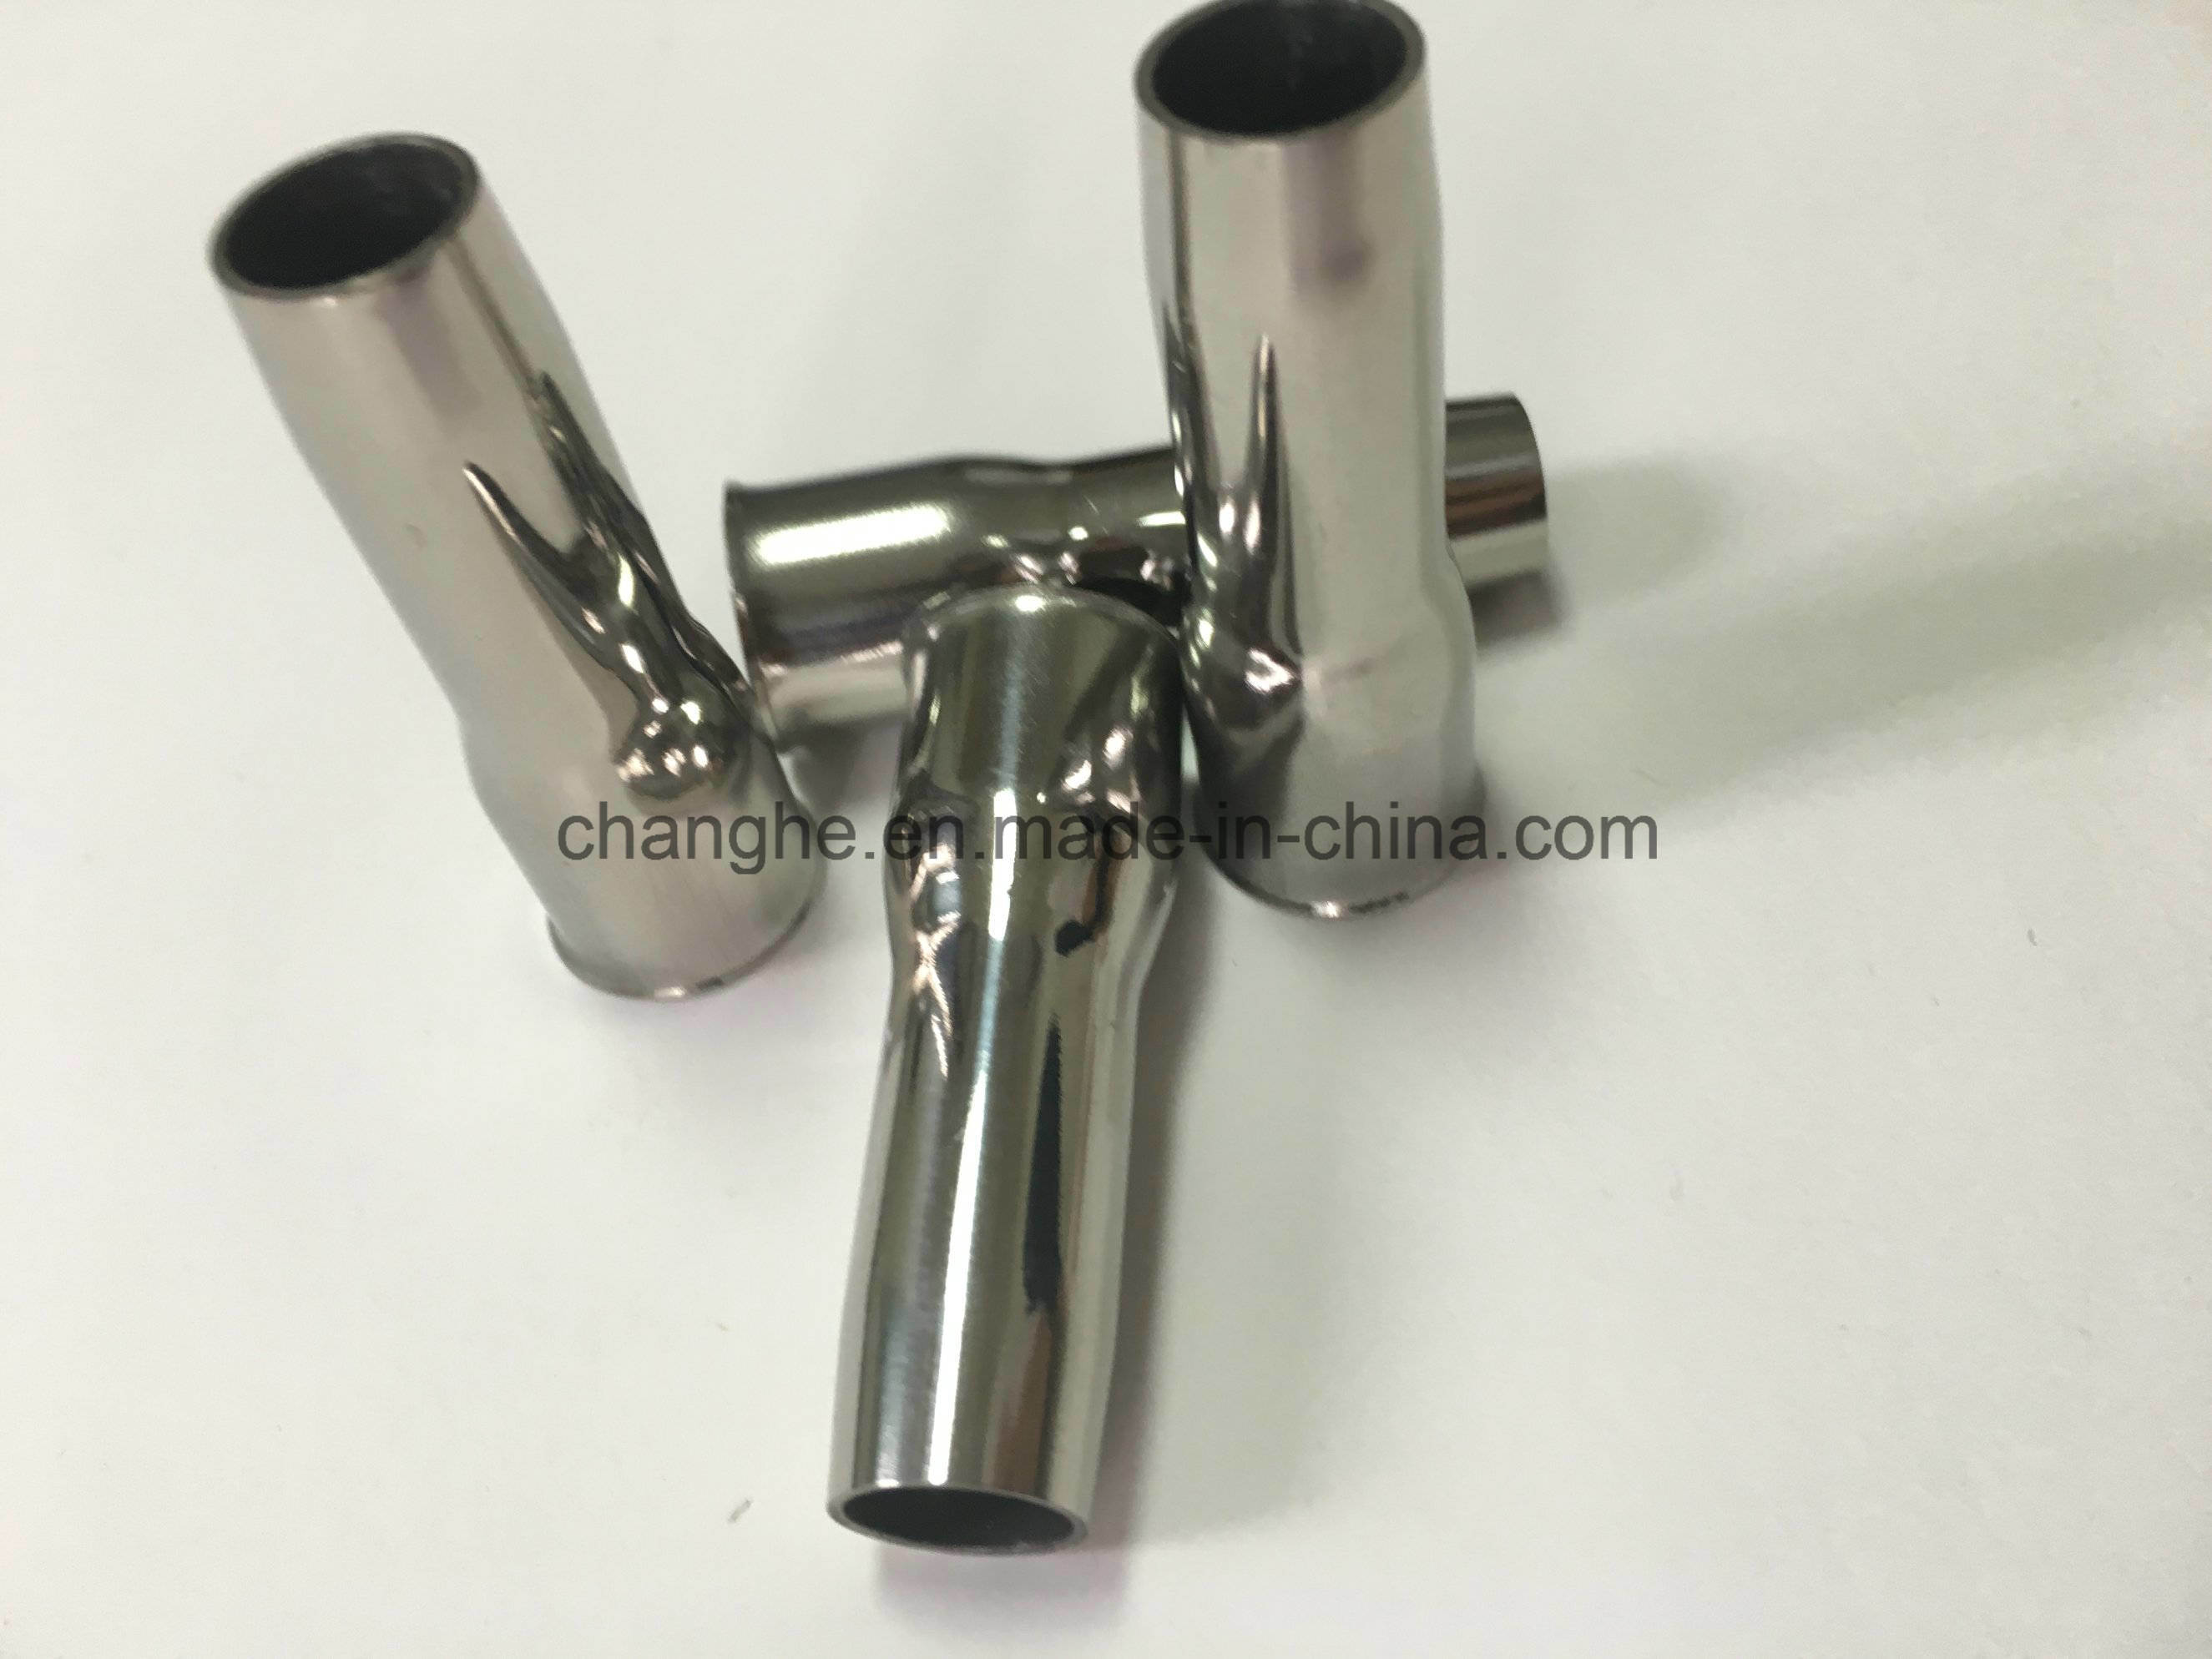 Stainless Steel Auto Parts with High Quality